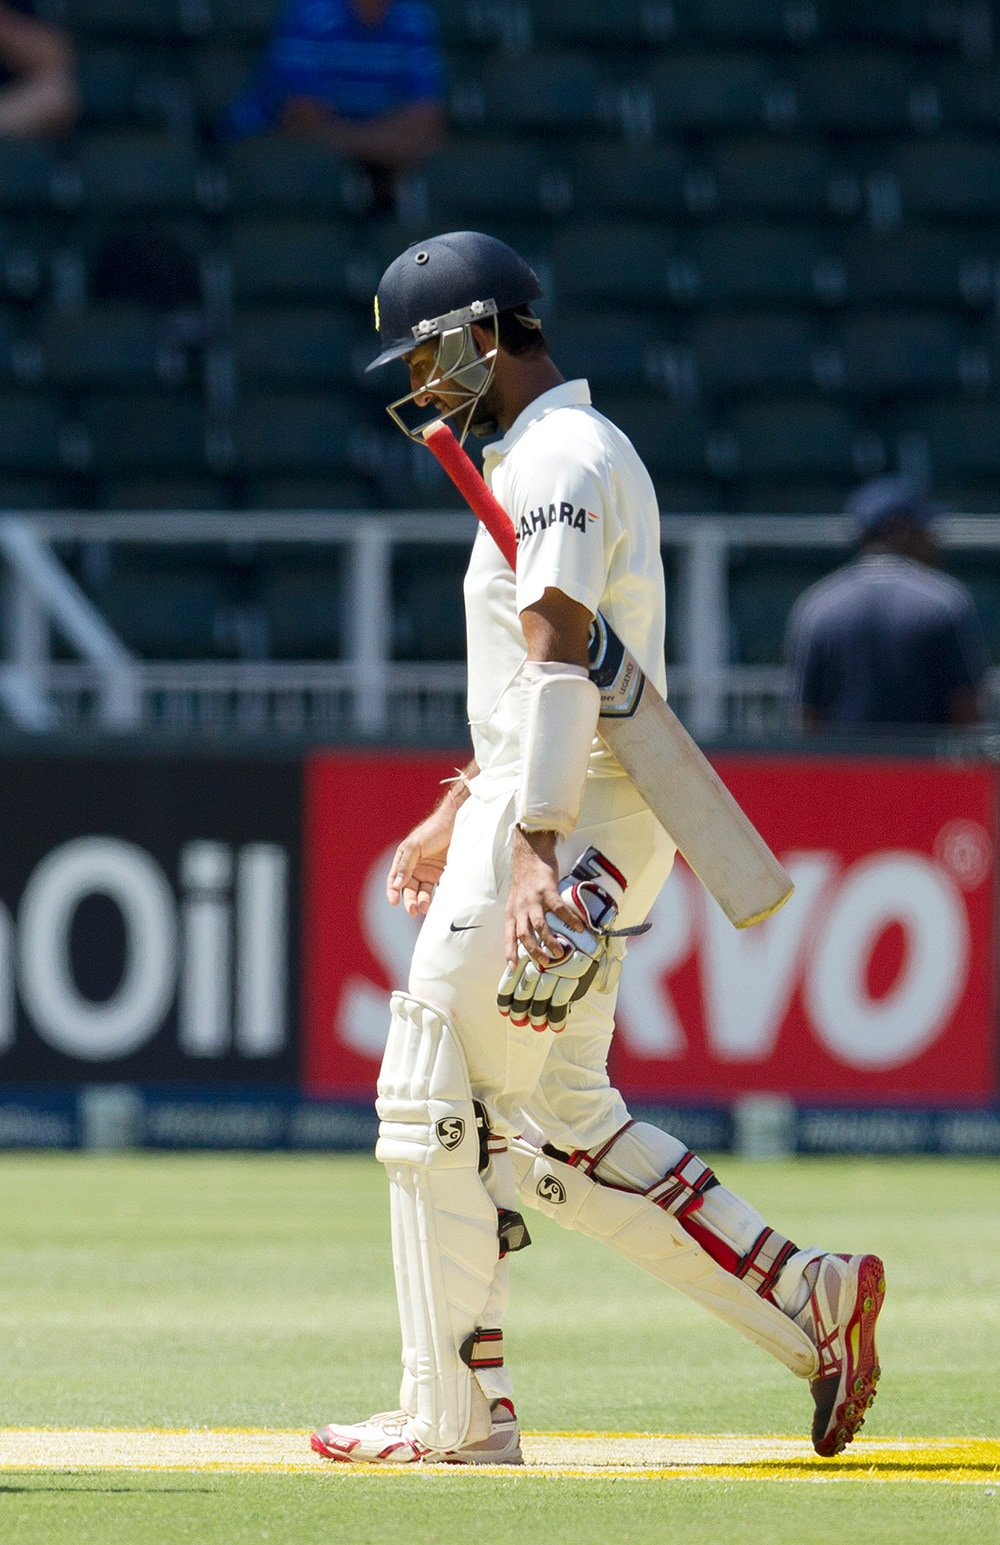 Cheteshwar Pujara, walks back to the pavilion after being dismissed for 25 runs during the first day of their cricket test match at Wanderers stadium in Johannesburg, South Africa.